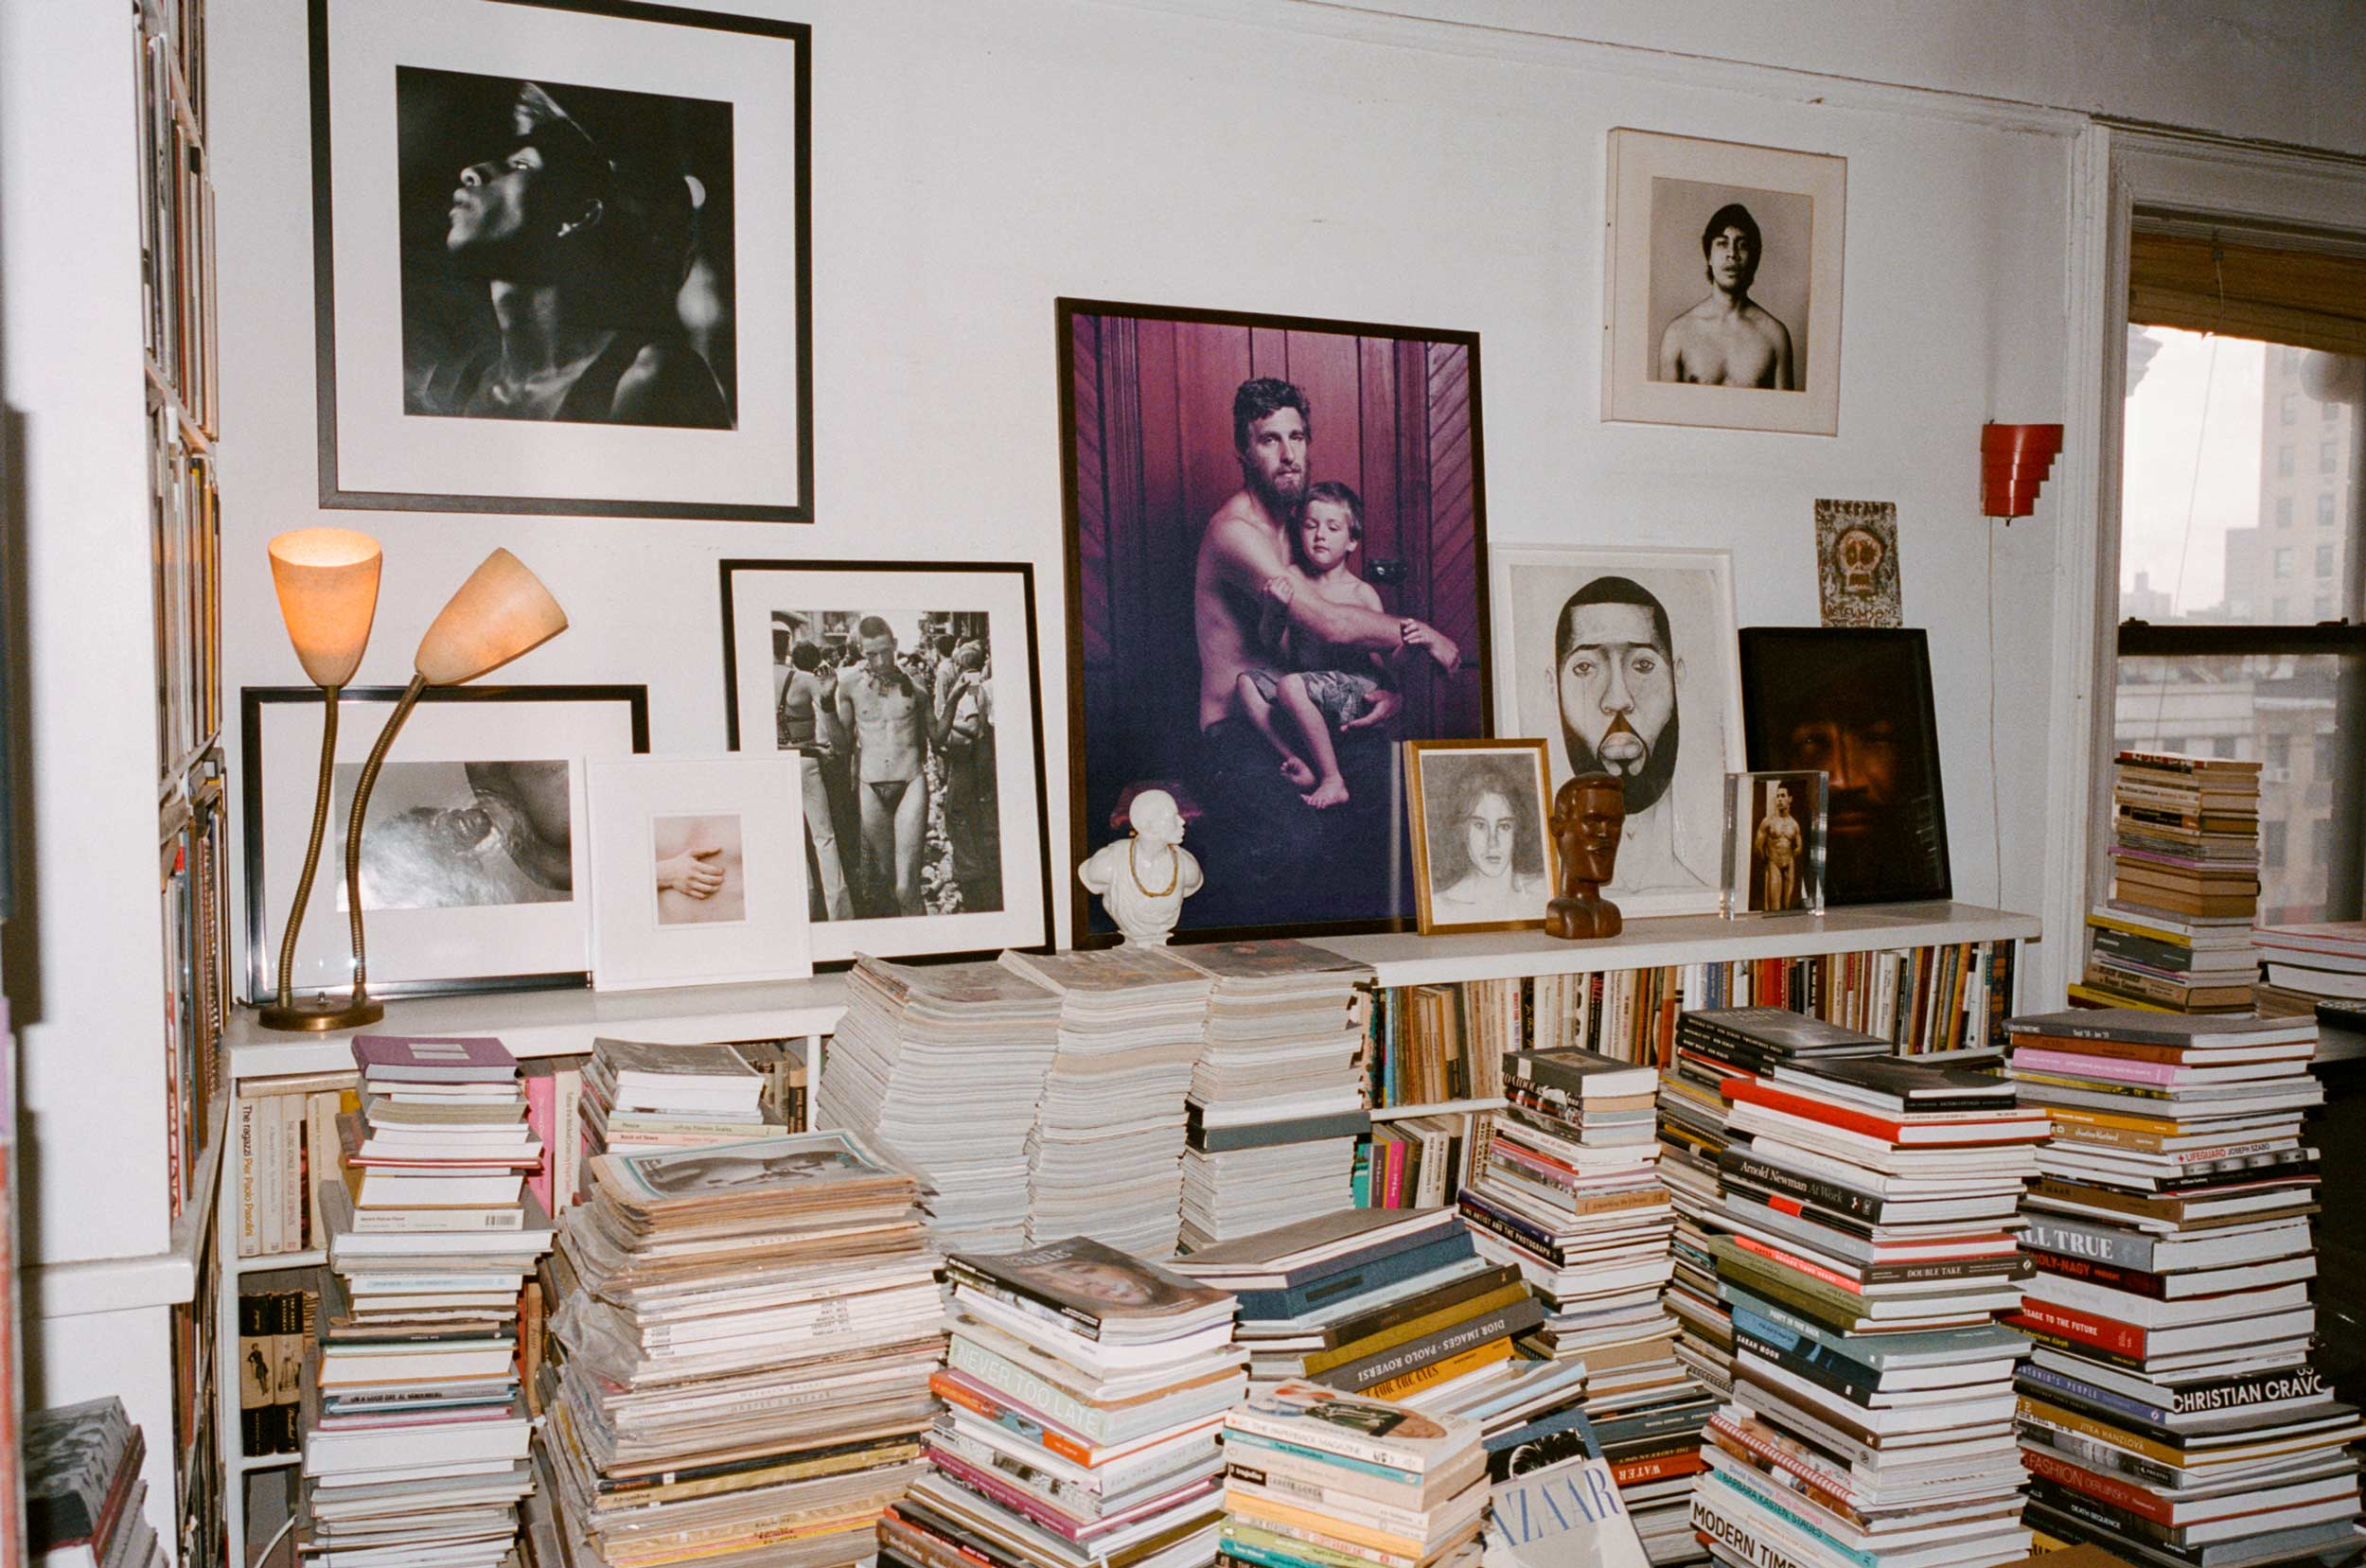 Vince Aletti teaches us how to build a legendary magazine collection